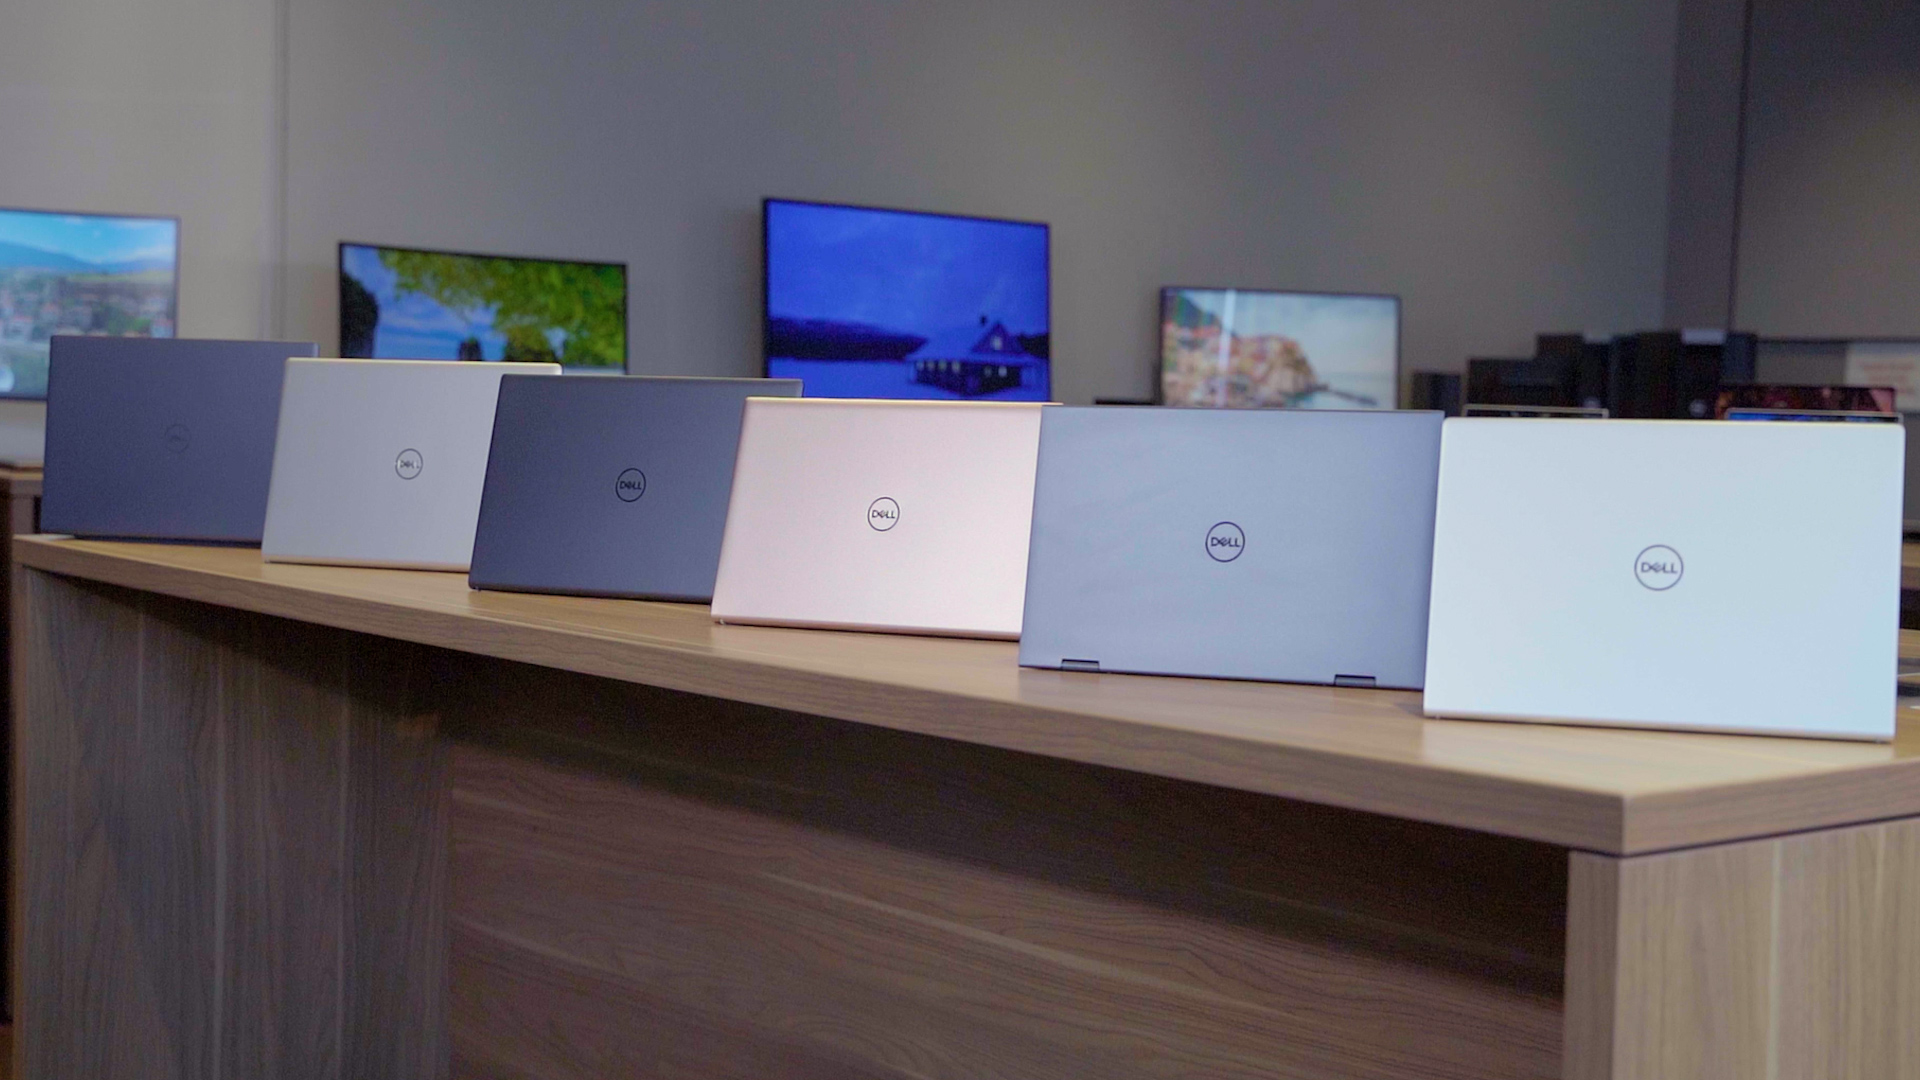 <p>Dell Inspiron redesign 2021. Six Dell Inspiron laptops laid out on a wooden table in gray, silver and copper colors.</p>